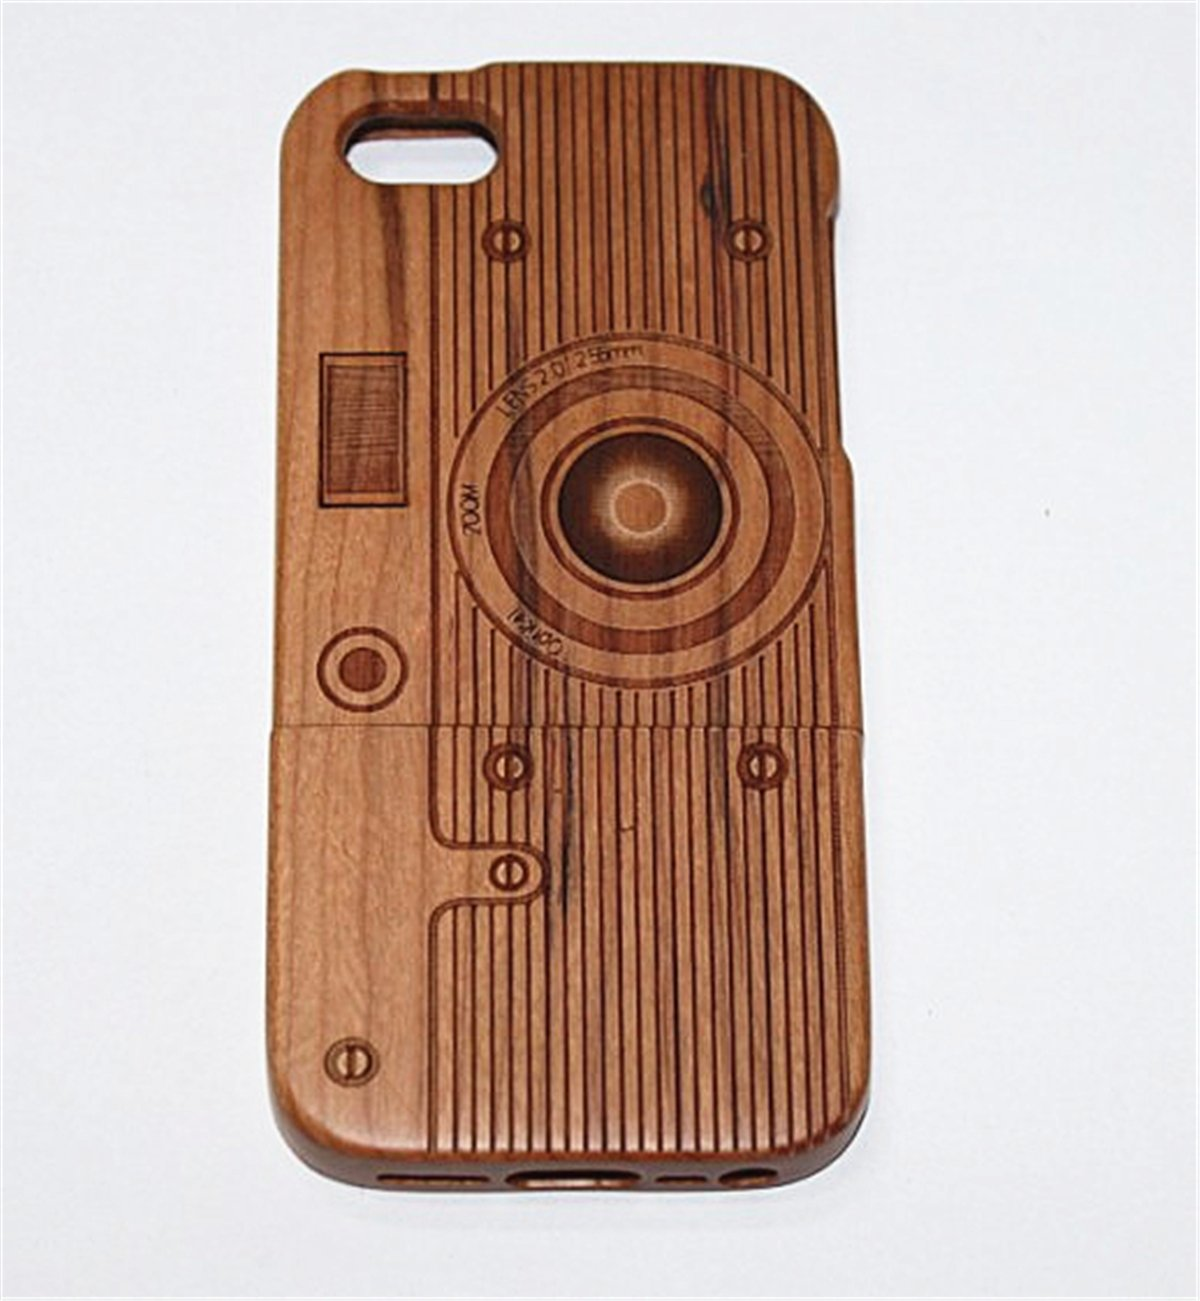 iPhone 6/6S Case, Firefish Unique Handmade Natural Wood Wooden Hard Case Cover For iPhone 6/6S High Impact absorbent Shell ( With A Stylus) -Camera